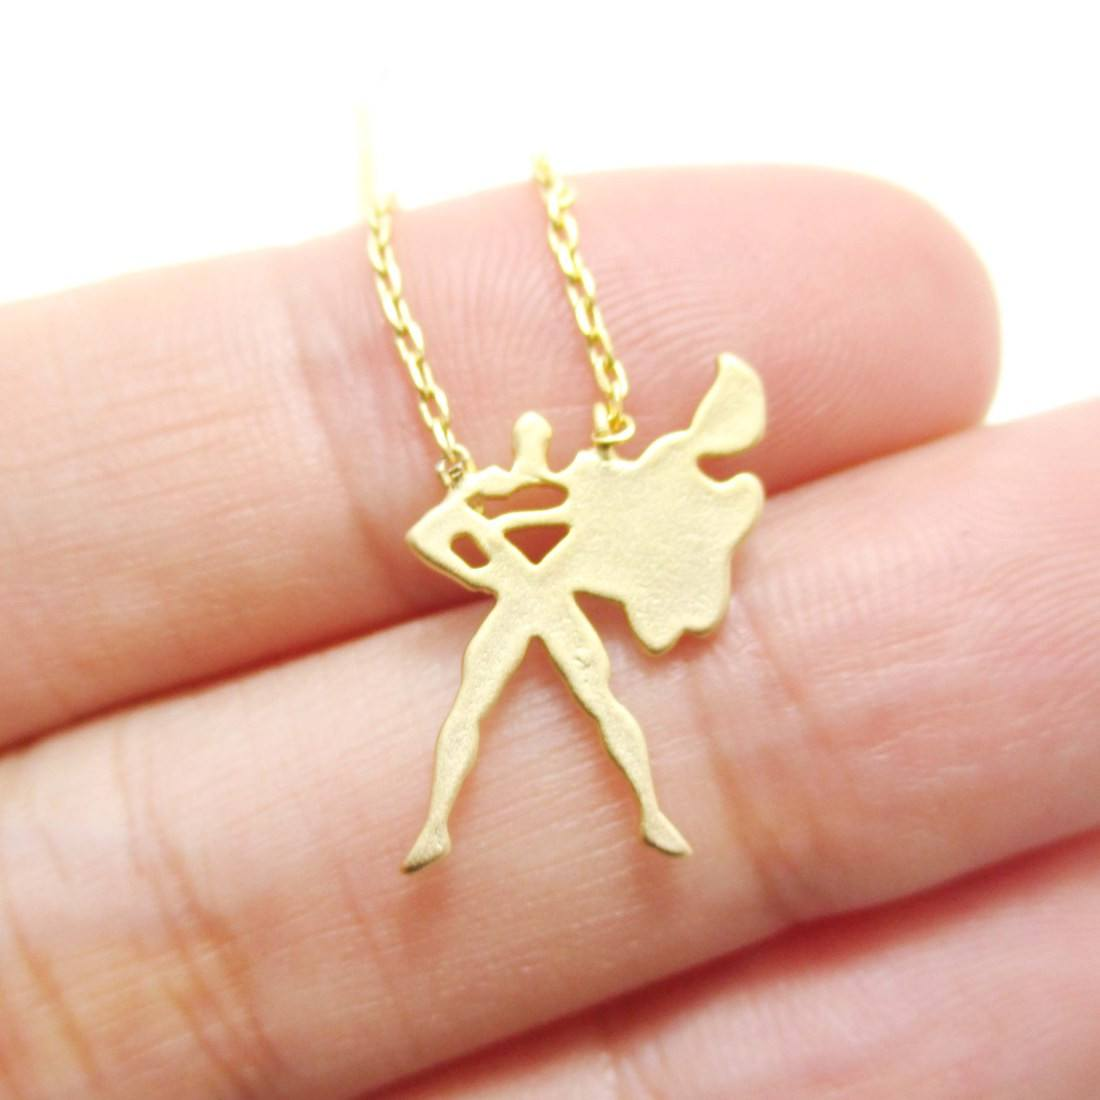 Superman Silhouette Shaped Pendant Necklace in Gold